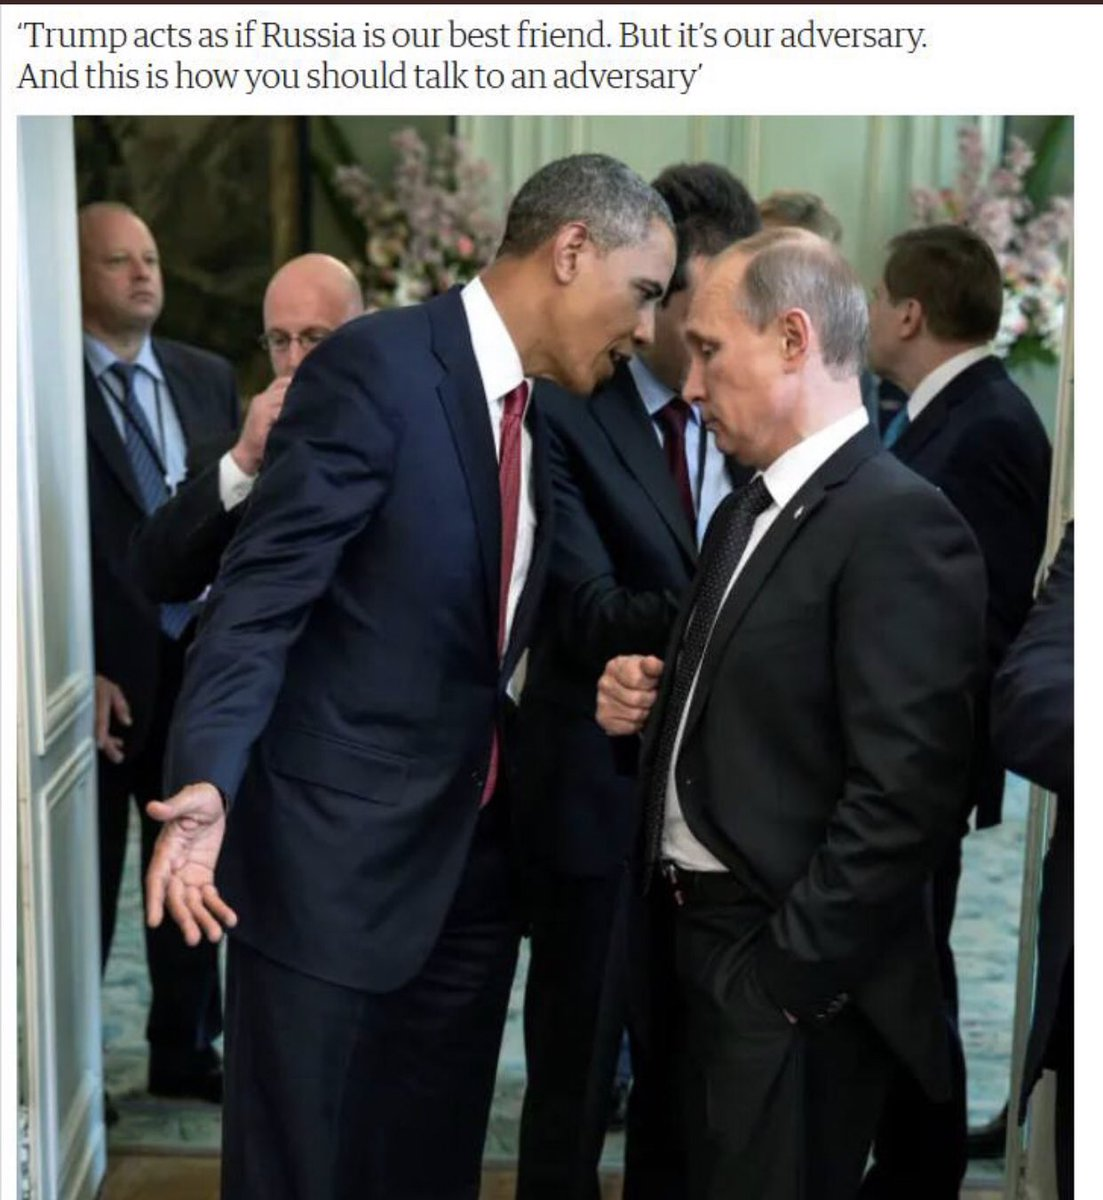 @smc429 This is how it is done! You don't back down to Putin! You meet aggression with civil aggression. The bully will cower. Lil' Don cowers to this fool! #obamaneverbackeddown